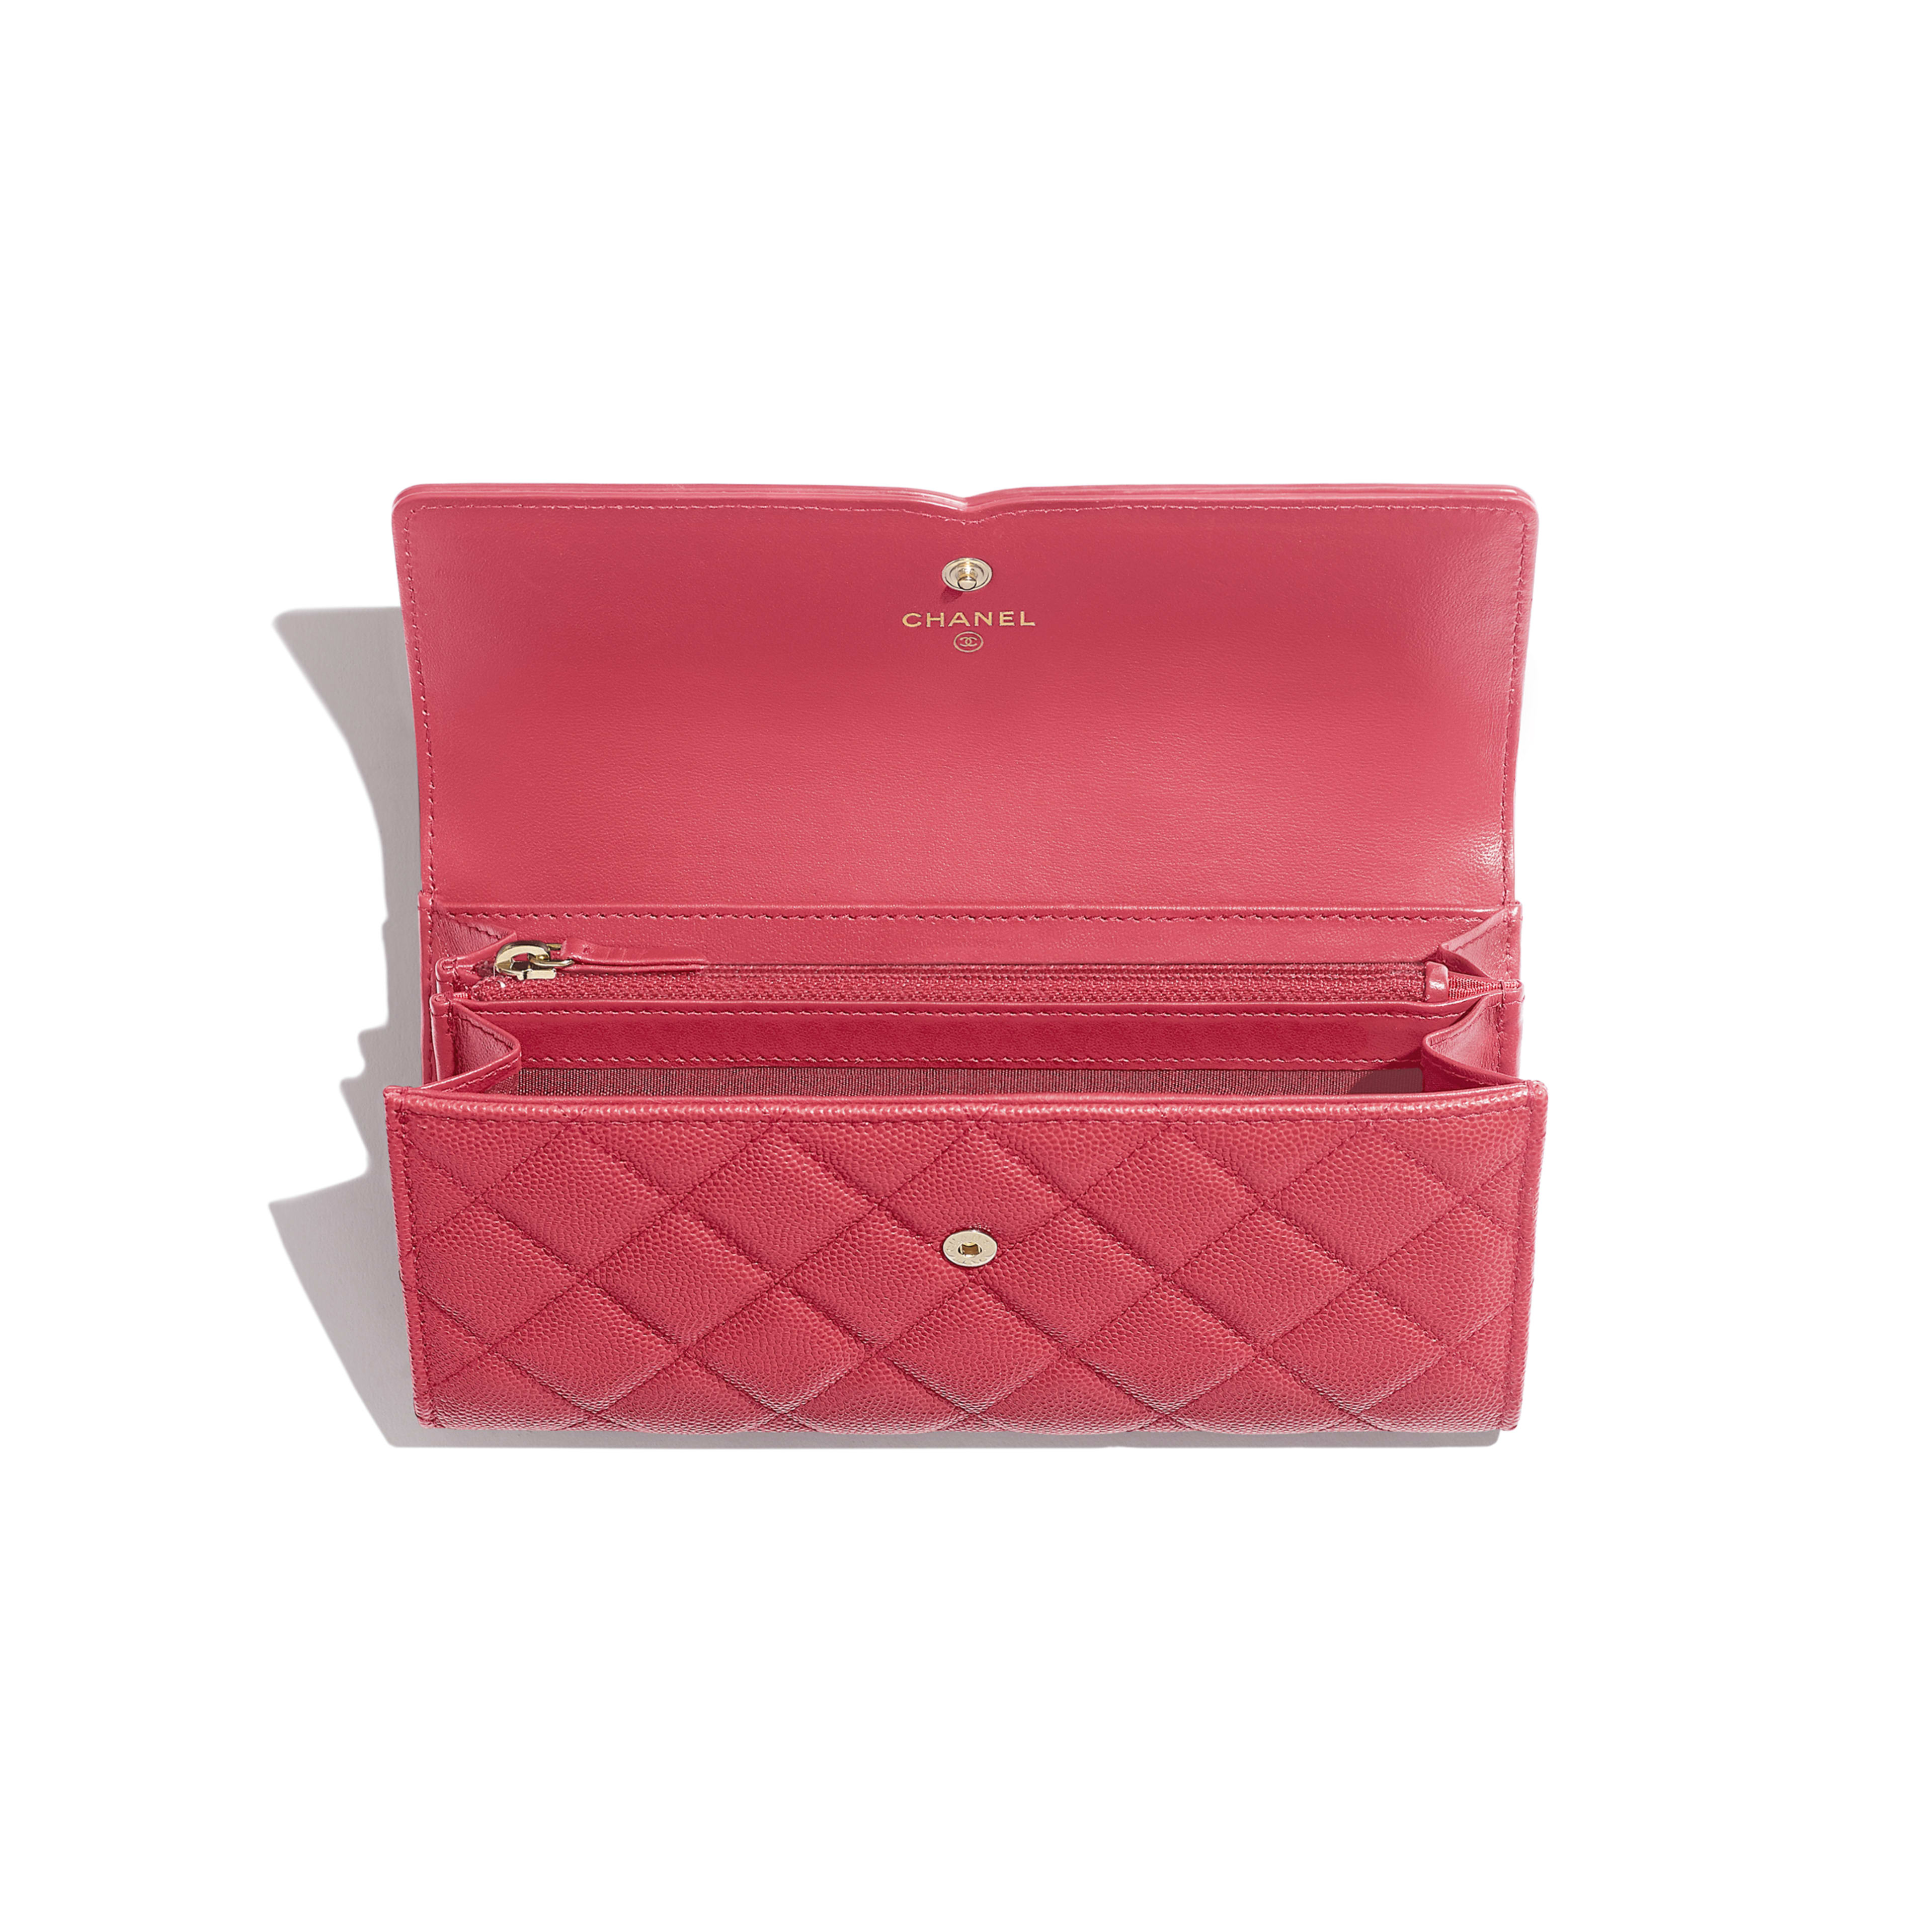 Long Flap Wallet - Pink - Grained Calfskin & Gold-Tone Metal - Other view - see full sized version